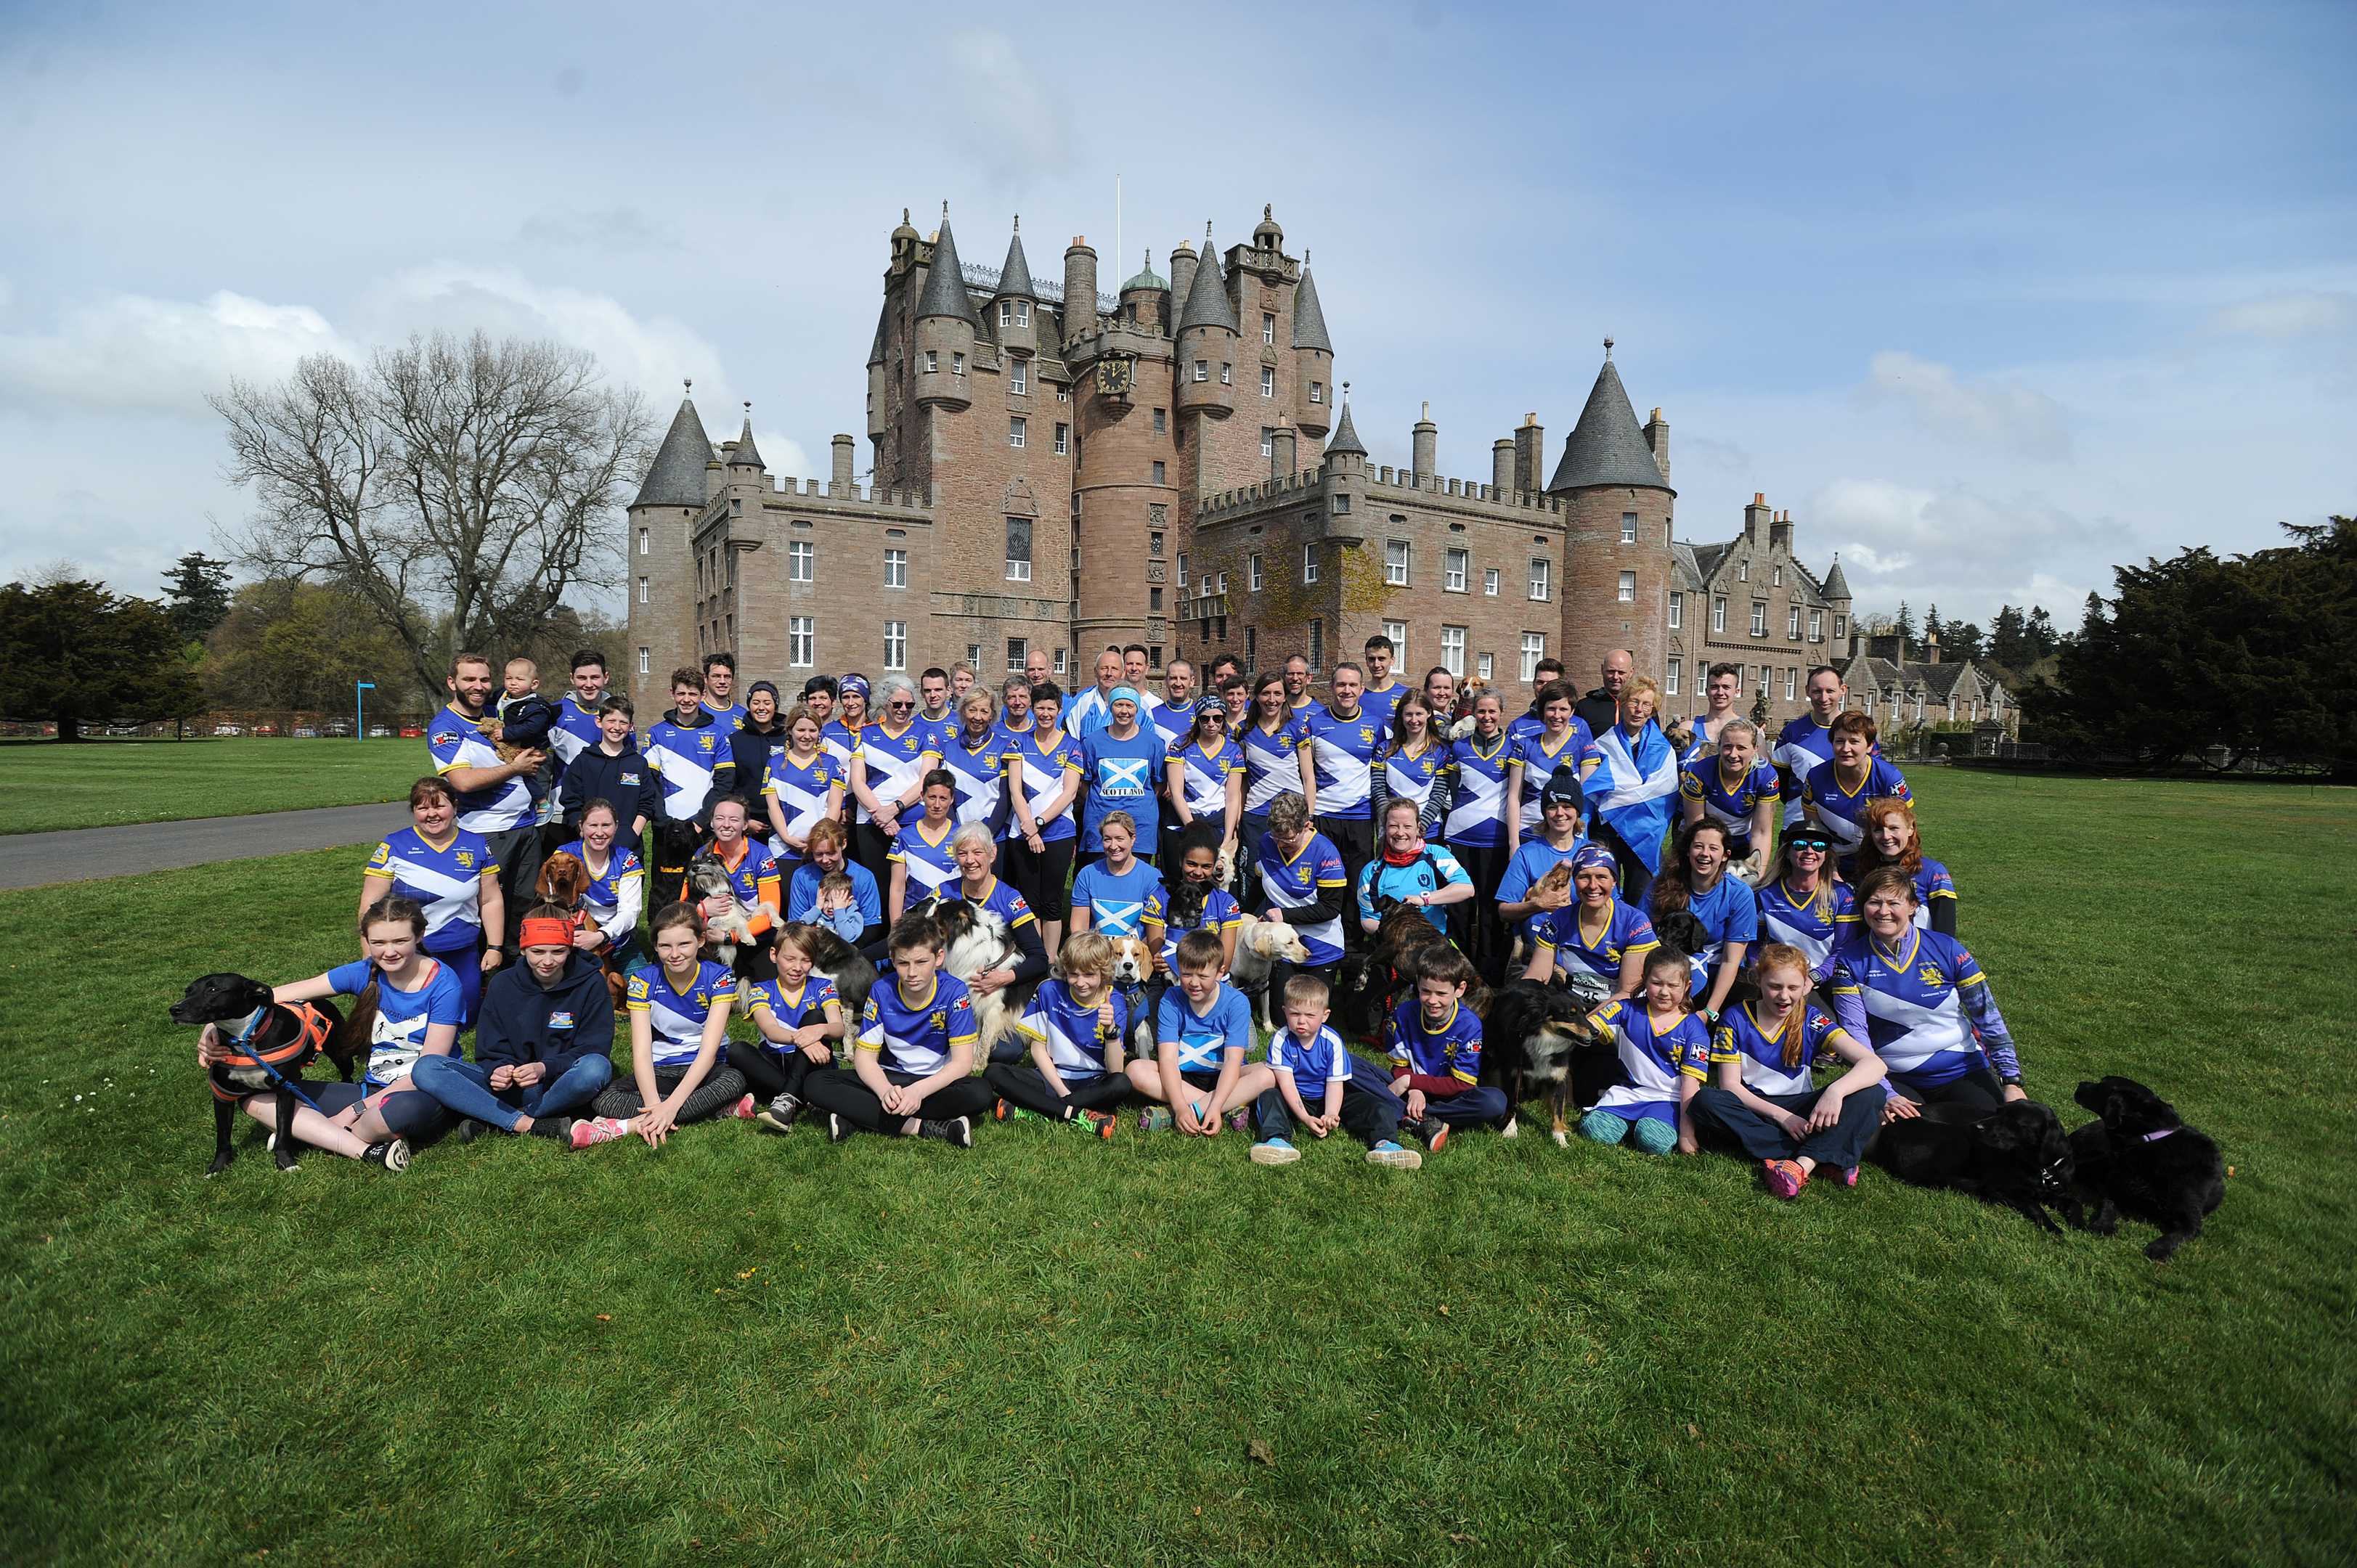 The Scotland team gather before Glamis Castle.